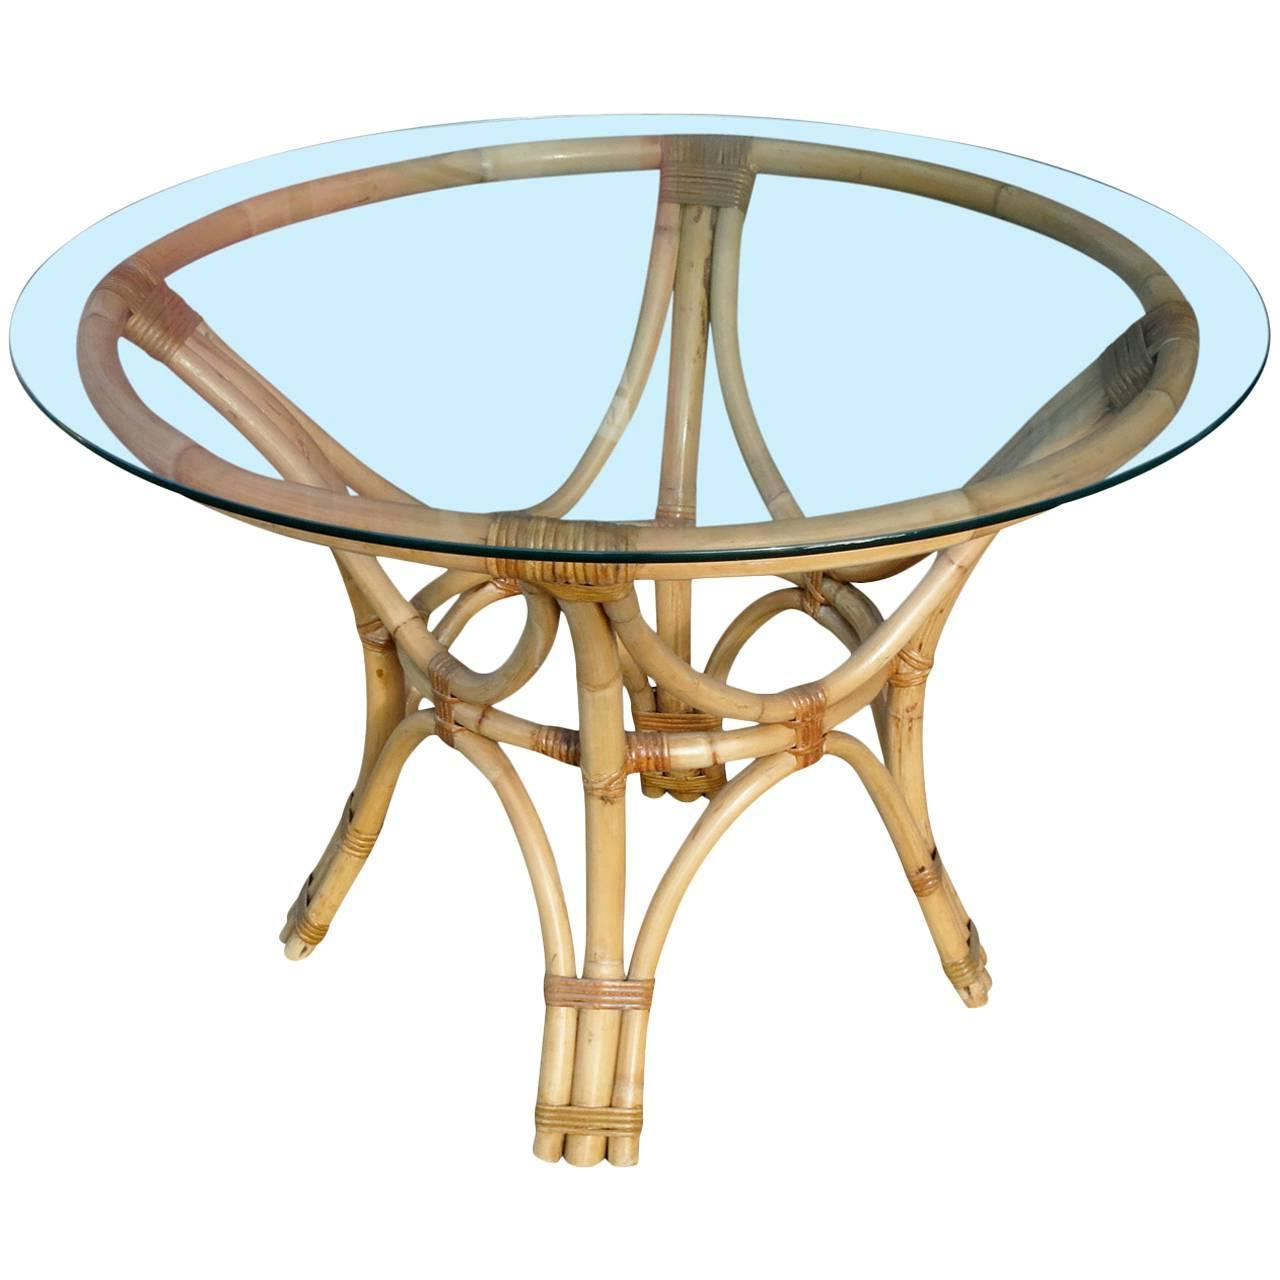 Restored Rattan Bentwood Dining Table With Round Glass Top inside Trendy Round Glass Top Dining Tables